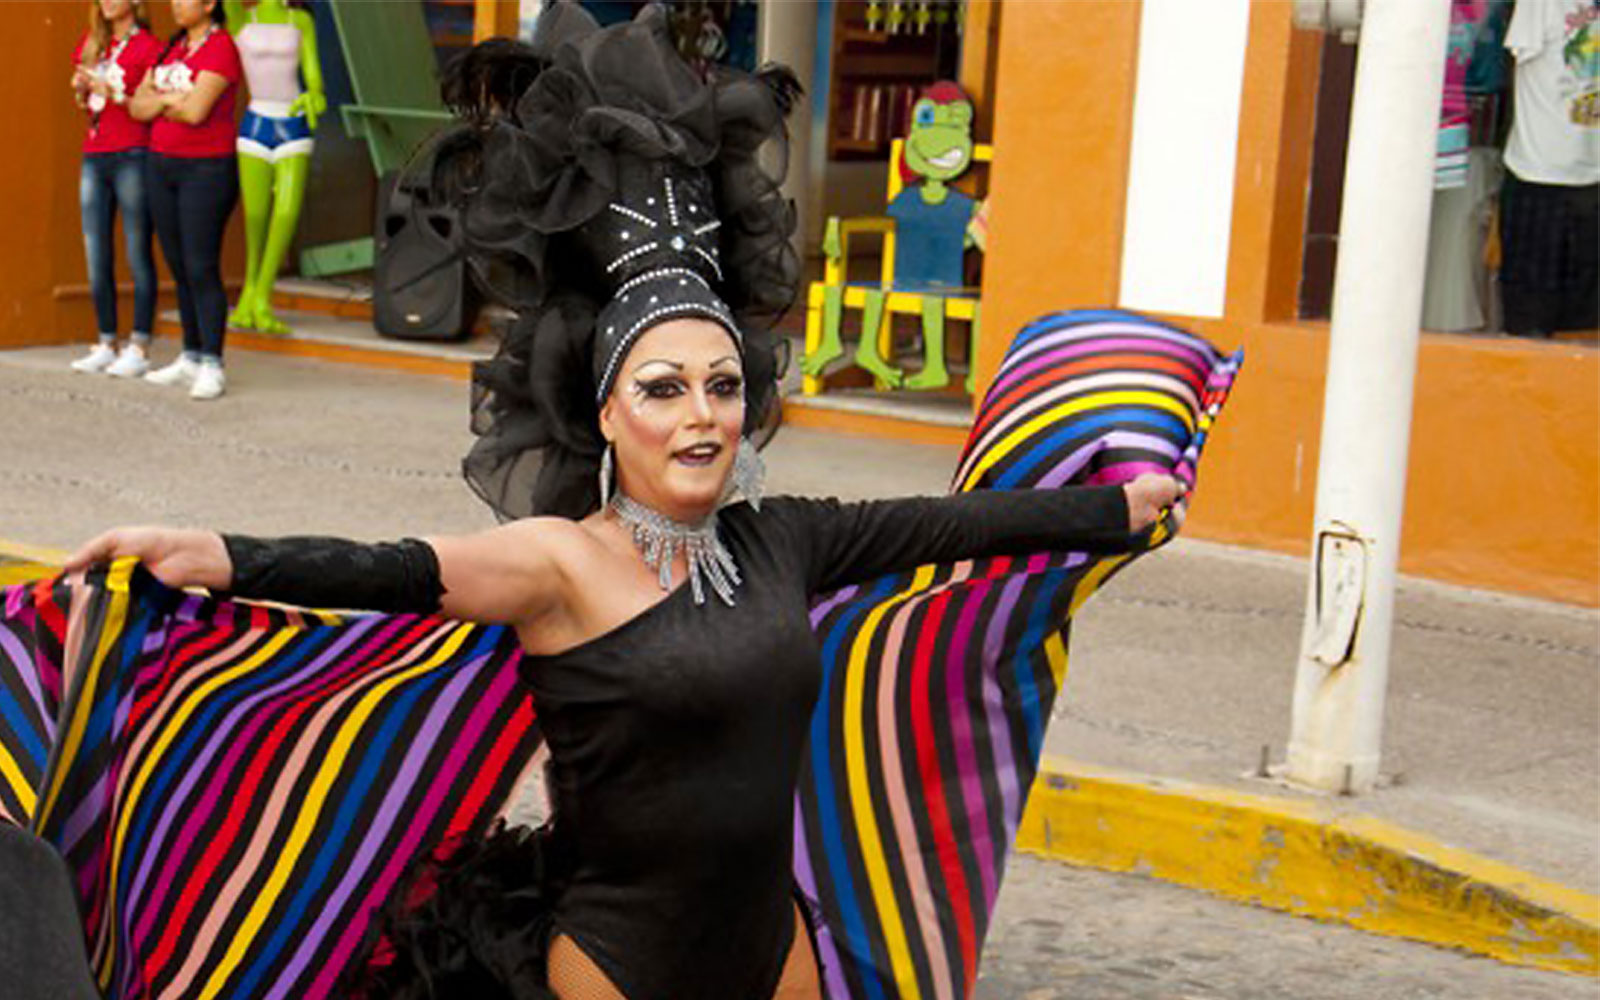 The Guide to Pride: Nine LGBT Destinations to Visit This Summer: Puerto Vallarta, Mexico